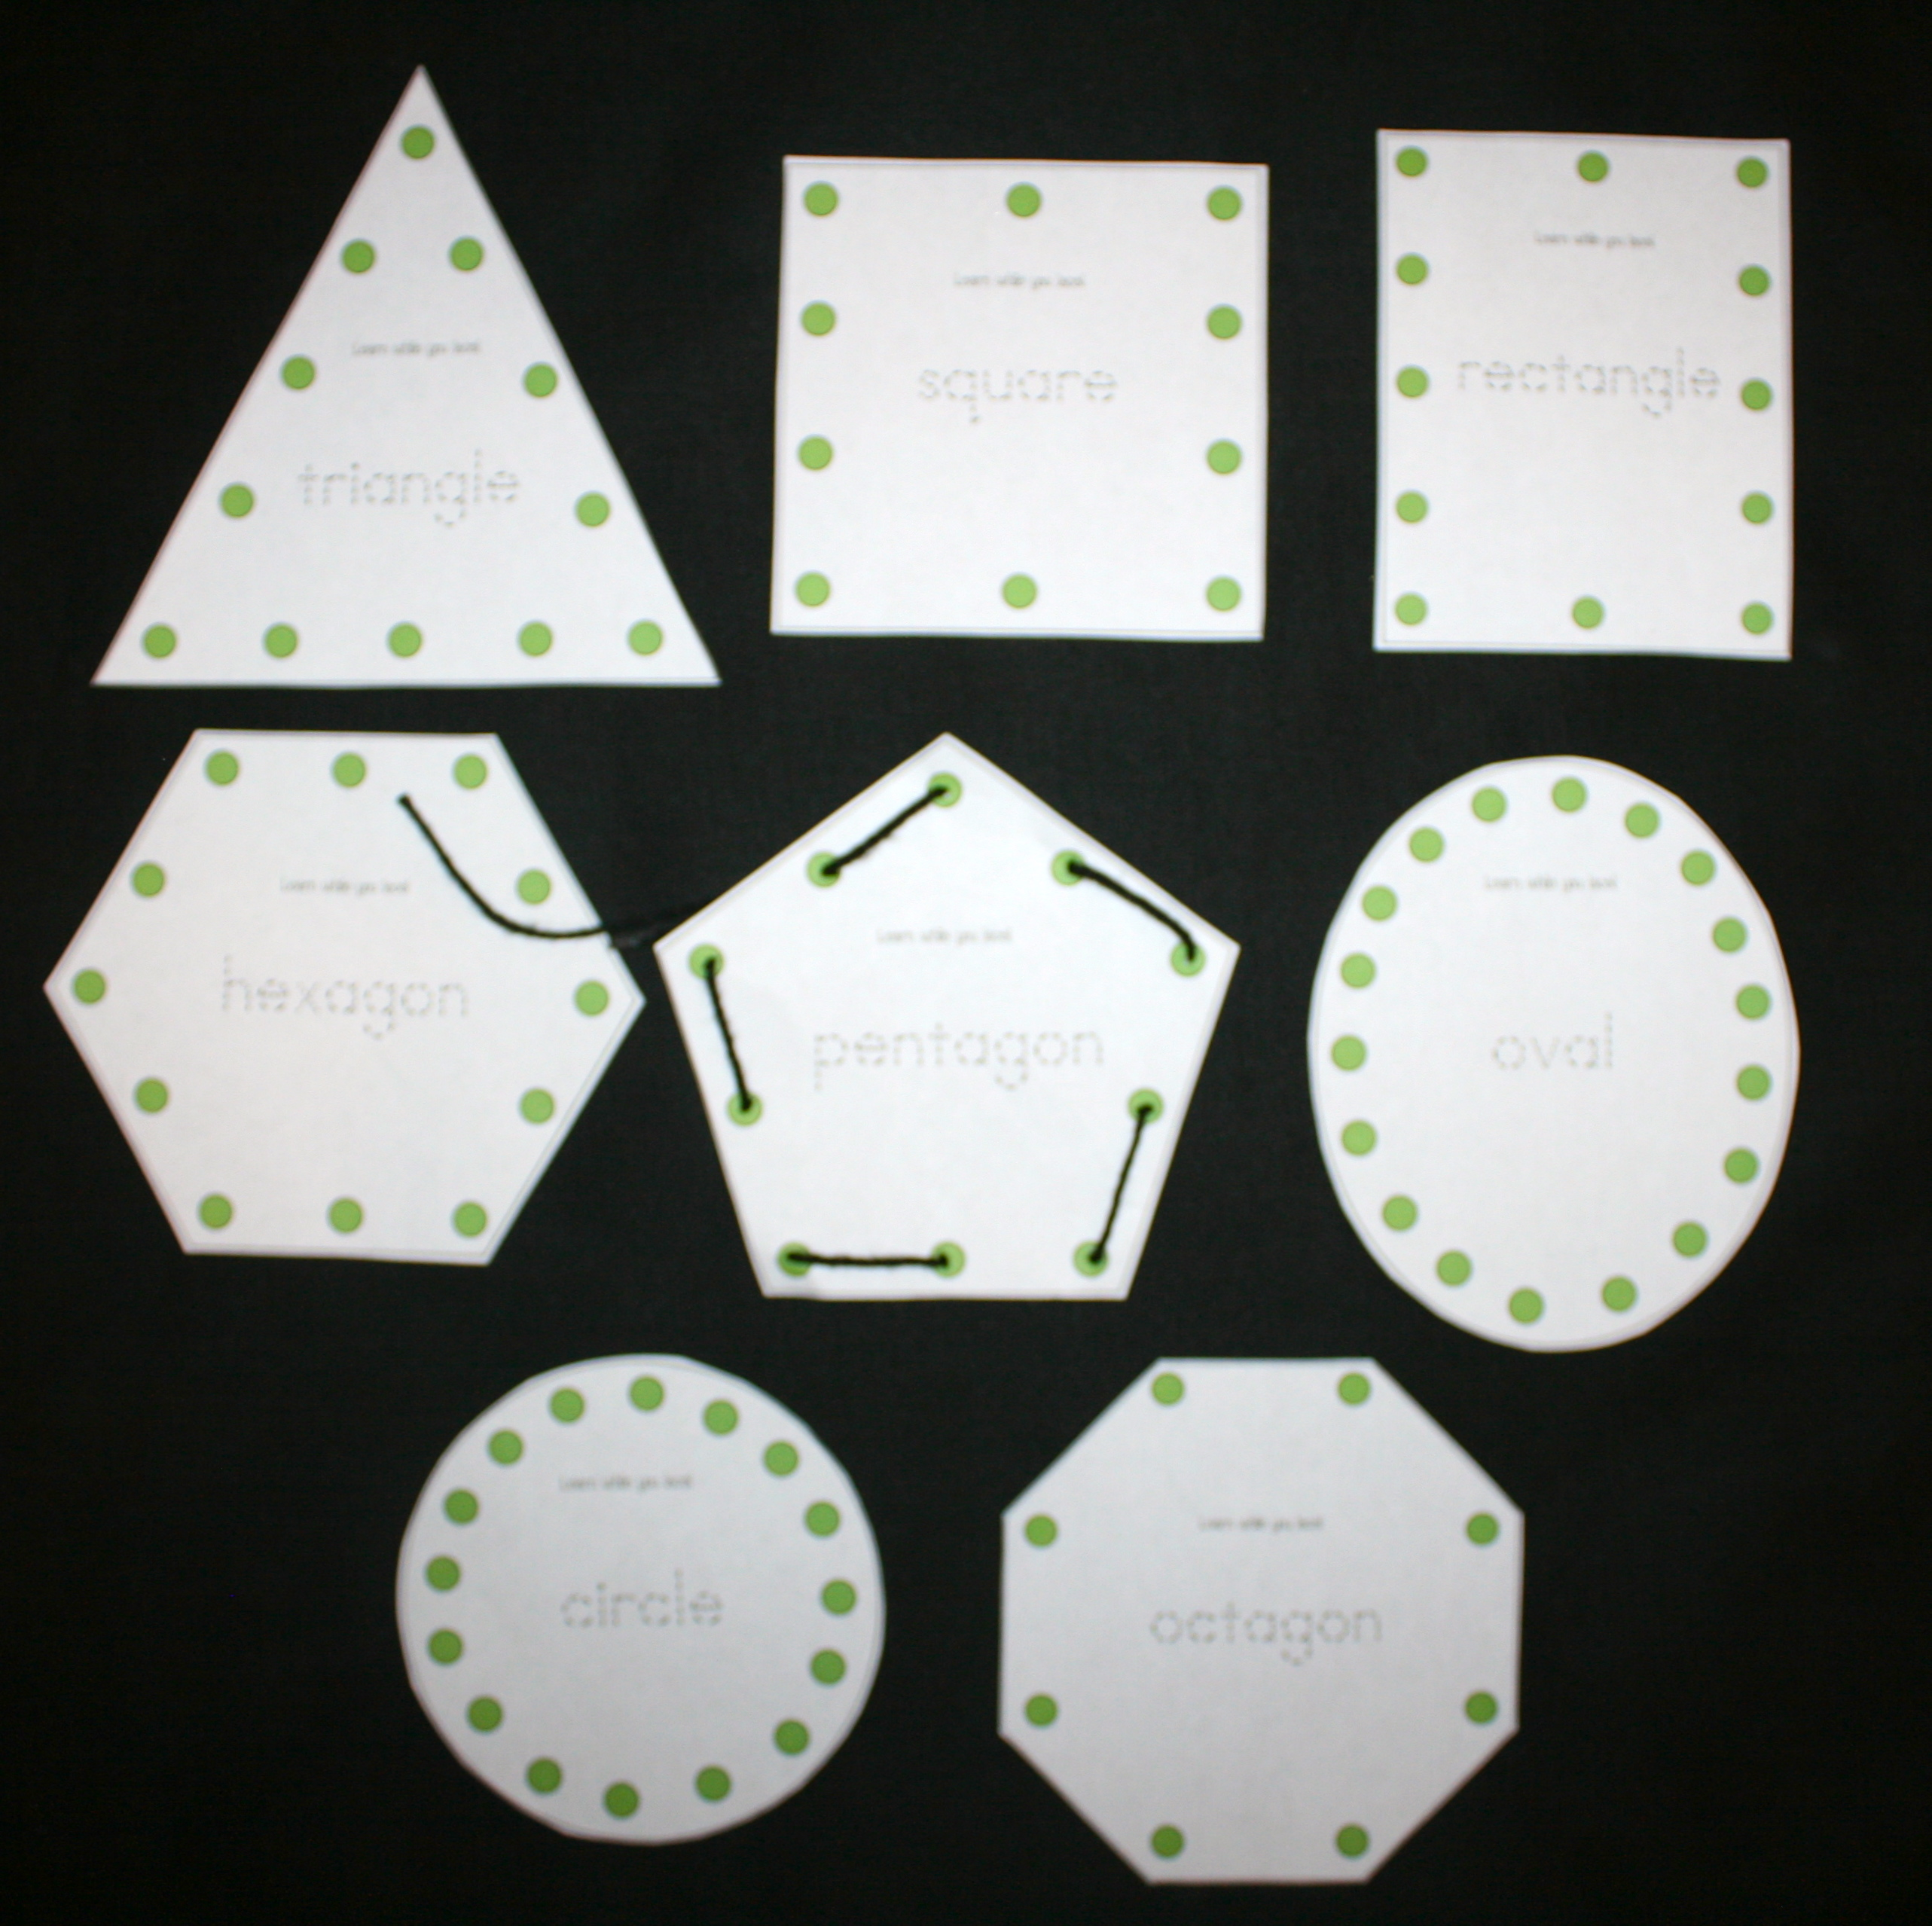 lacing, free lacing cards, 2D shapes, 2D shape activities, 2D shape lessons, shapes, hexagon lessons, octagon lessons, pentagon lessons, shape crafts, shape centers, shape games, circle triangle rectangle square oval shape activities, ,